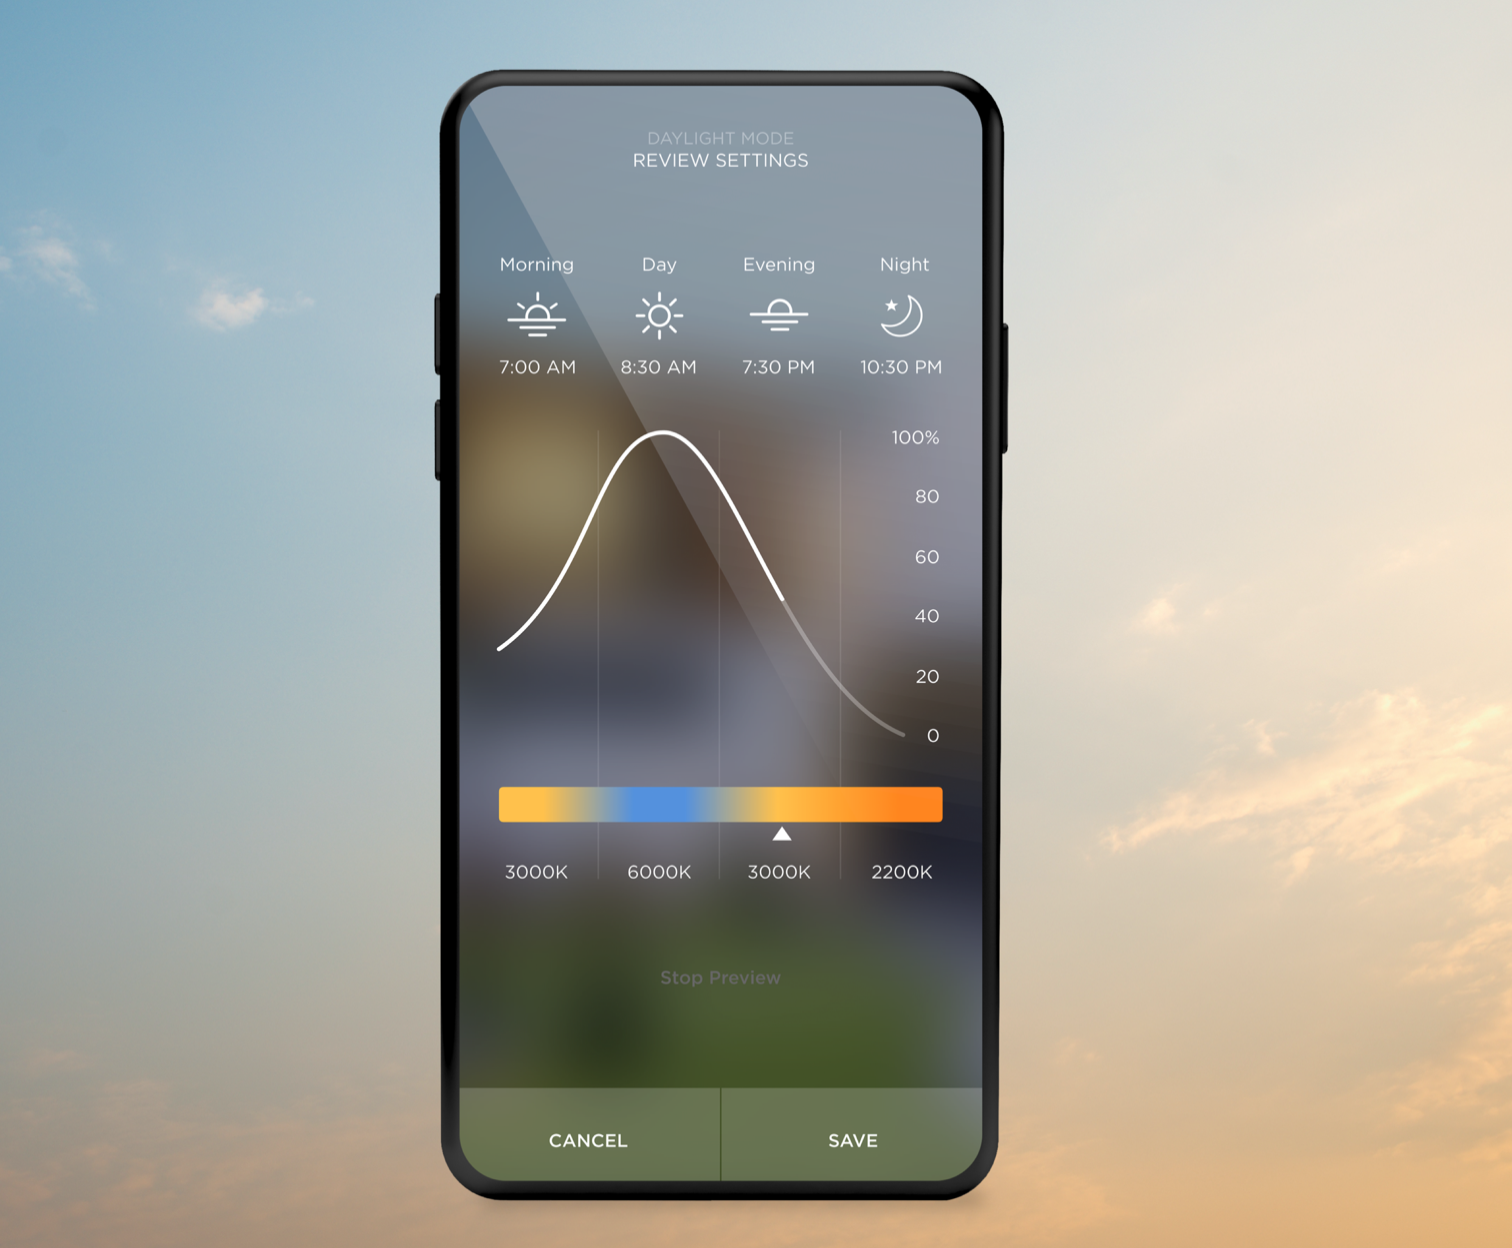 Savant's new feature called Daylight Mode can align lighting schemes to match the natural circadian progression based on the time of day.